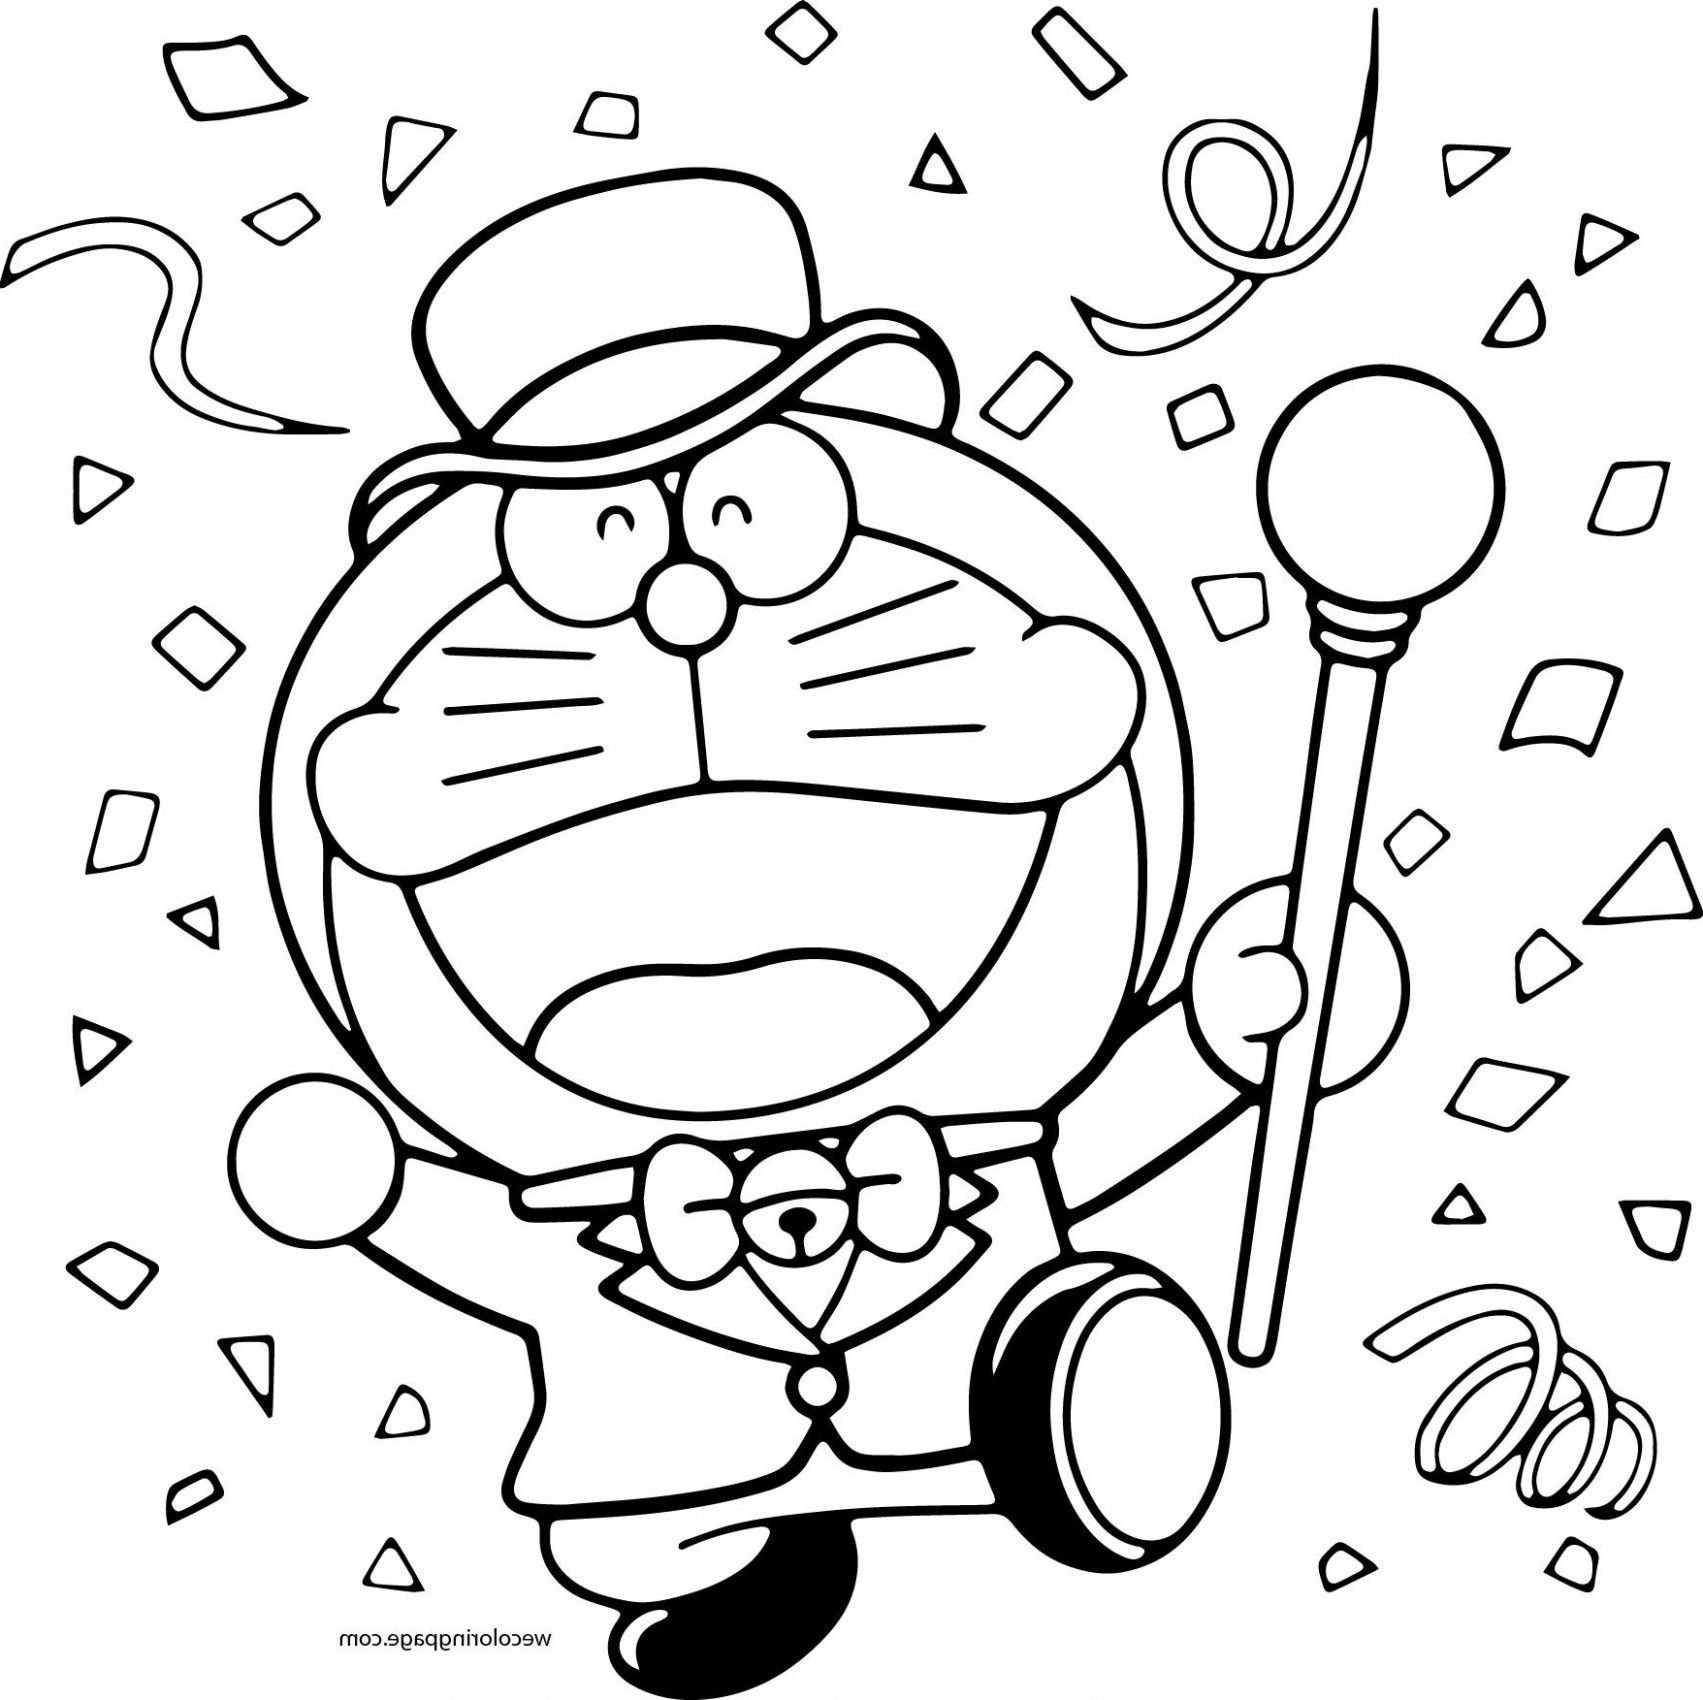 Seven Reasons You Should Fall In Love With Coloring Doraemon Movie Coloring Coloring Pages Coloring Pictures Online Coloring Pages